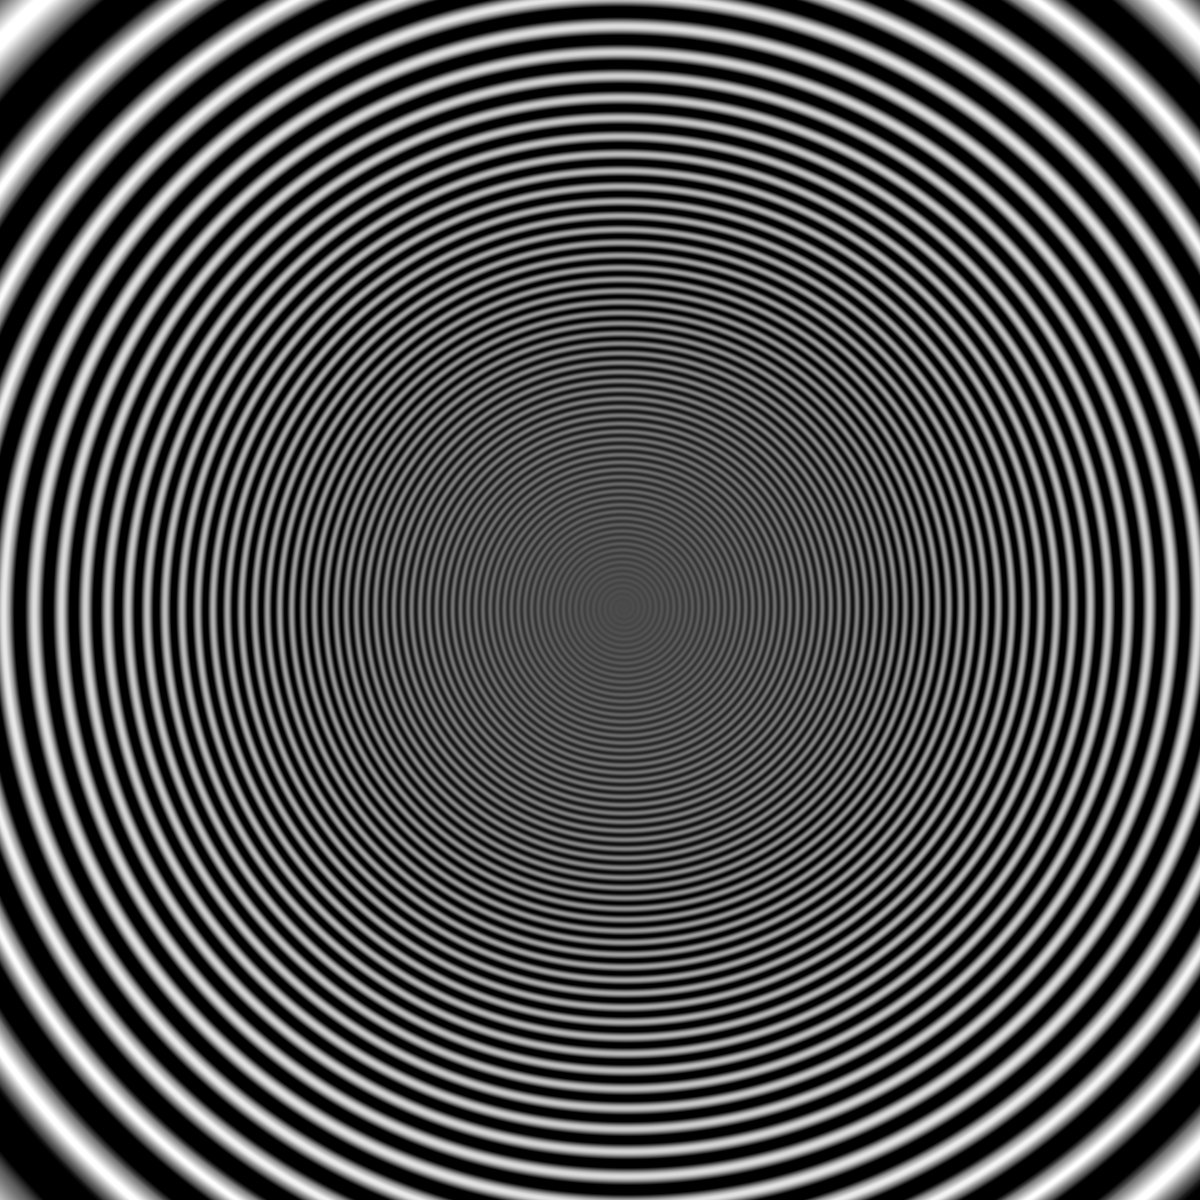 Getting Dizzy When Roliing Over In Bed